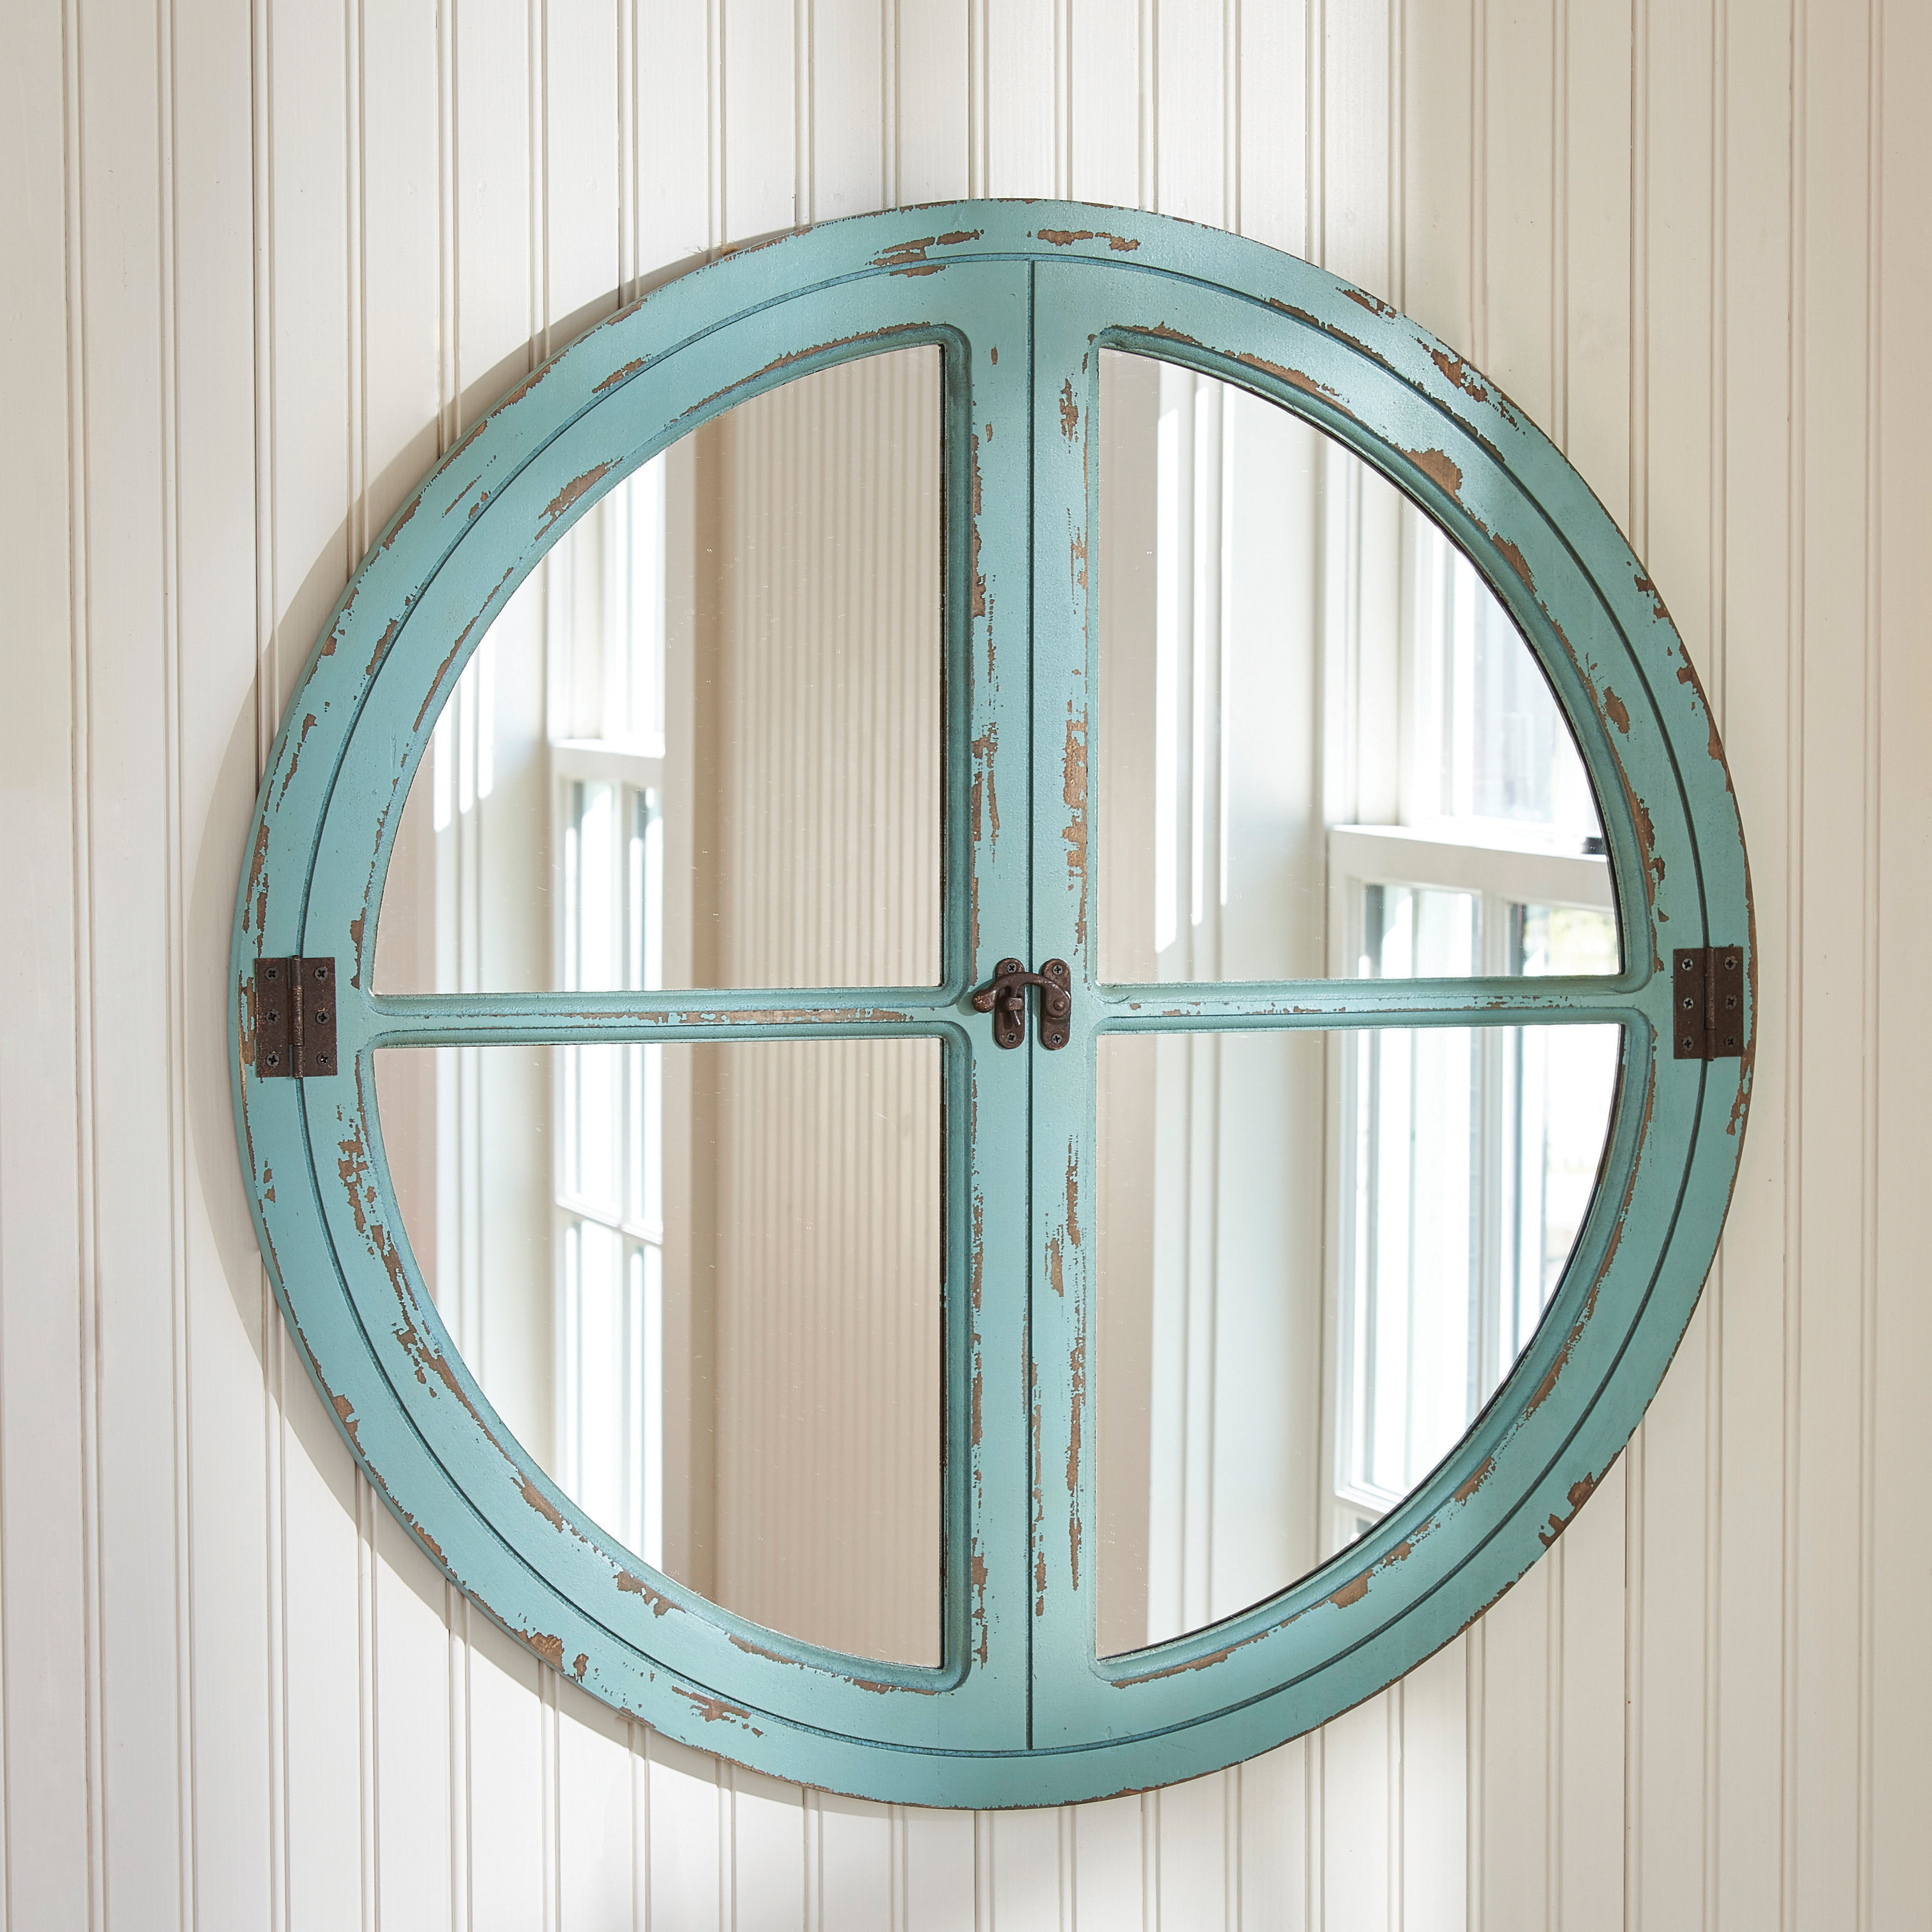 Latest Round Window Sea Wall Mirror Inside Beachy Wall Mirrors (View 11 of 20)